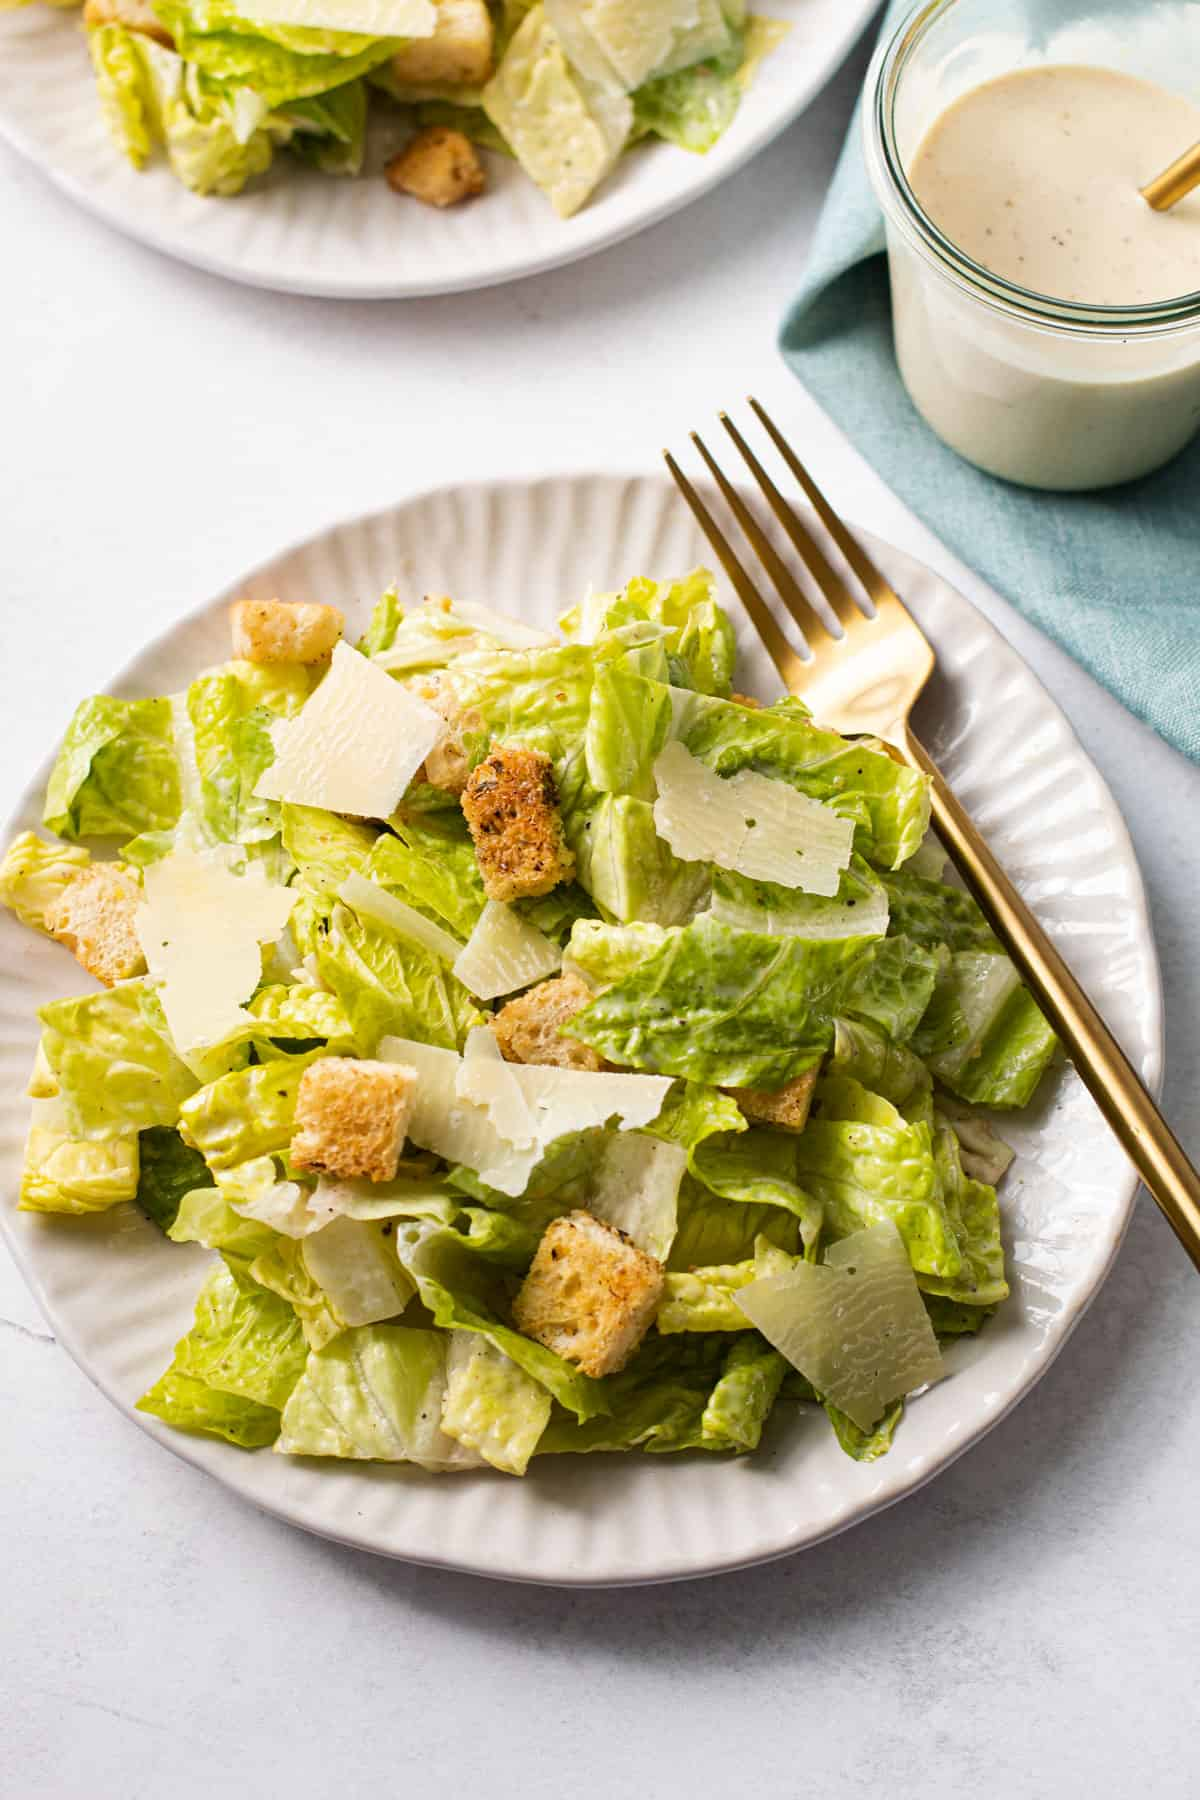 A classic Caesar salad on a plate with a fork.